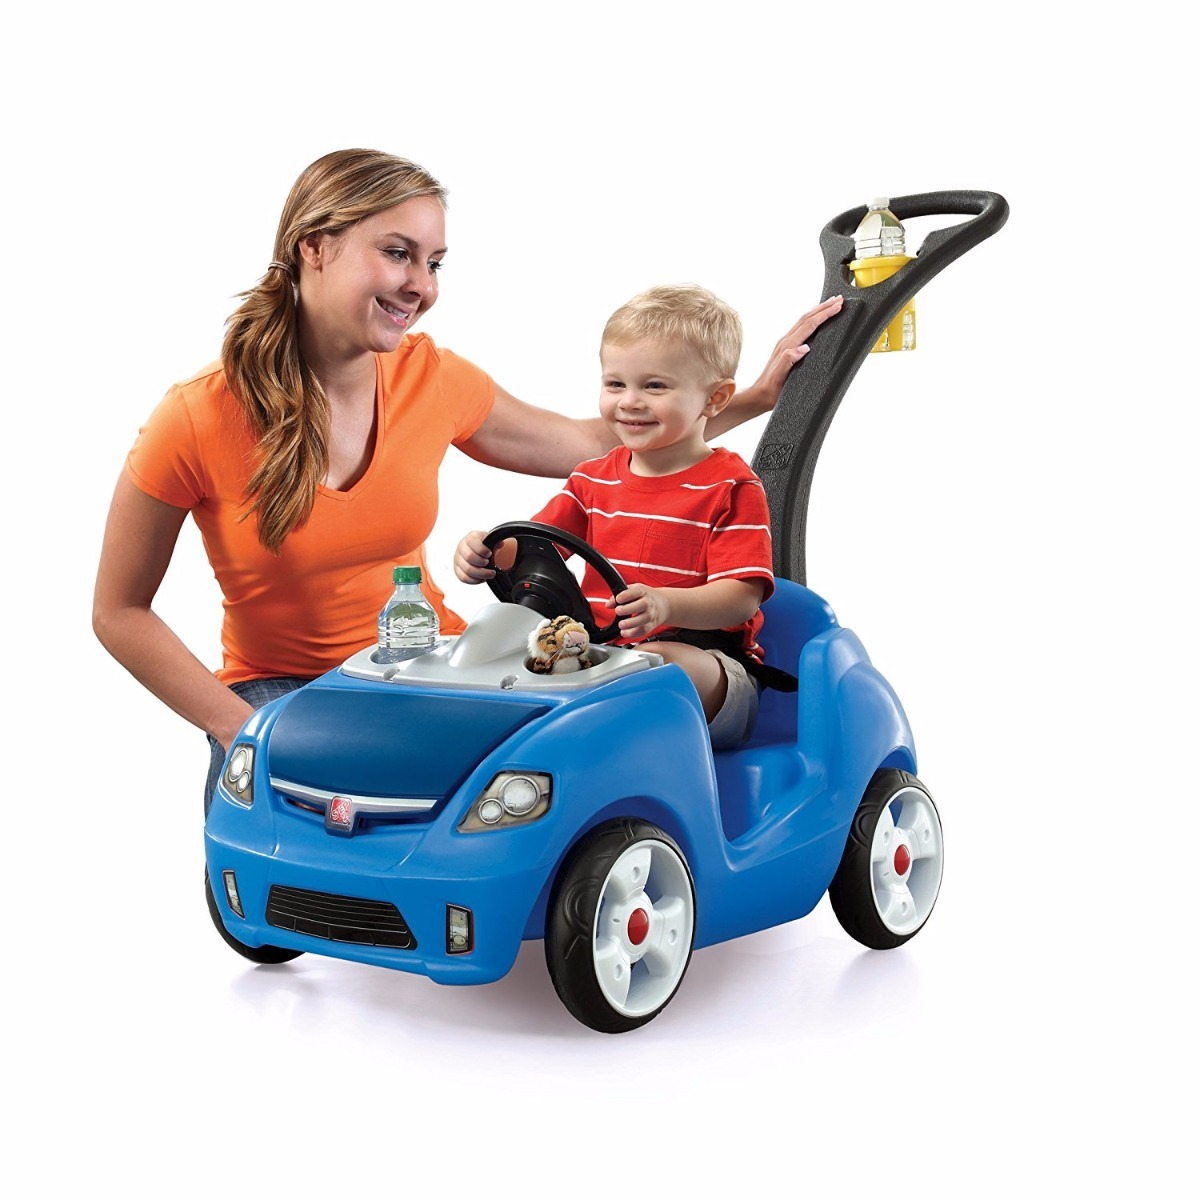 Carrito para ni os bebes pasear carro montable step 2 for Coches para 3 sillas infantiles